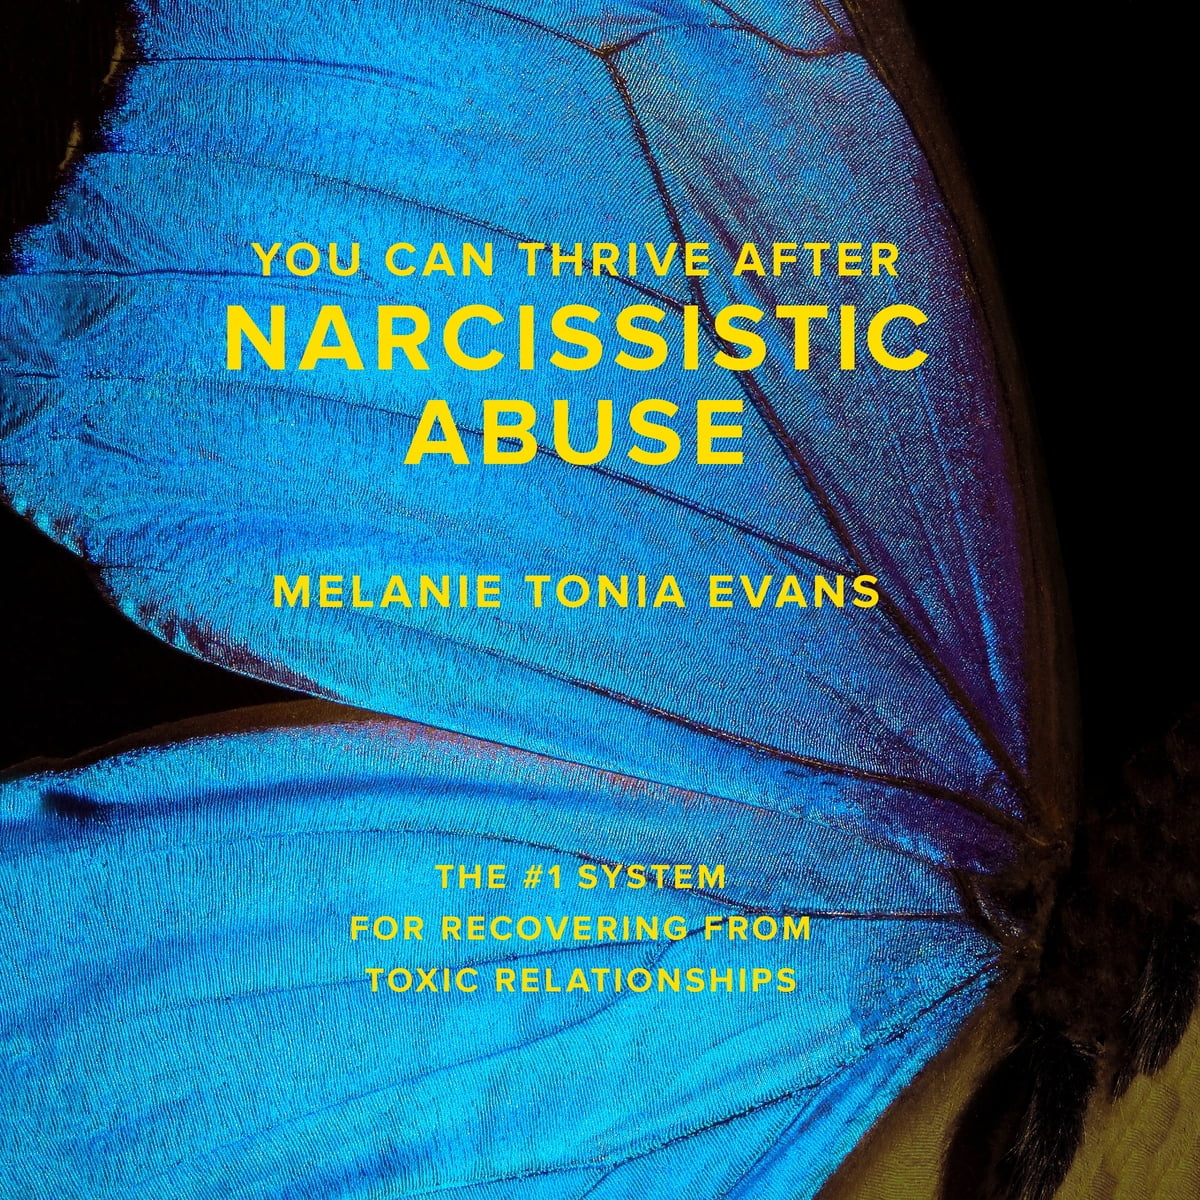 You Can Thrive After Narcissistic Abuse audiobook by Melanie Tonia Evans -  Rakuten Kobo